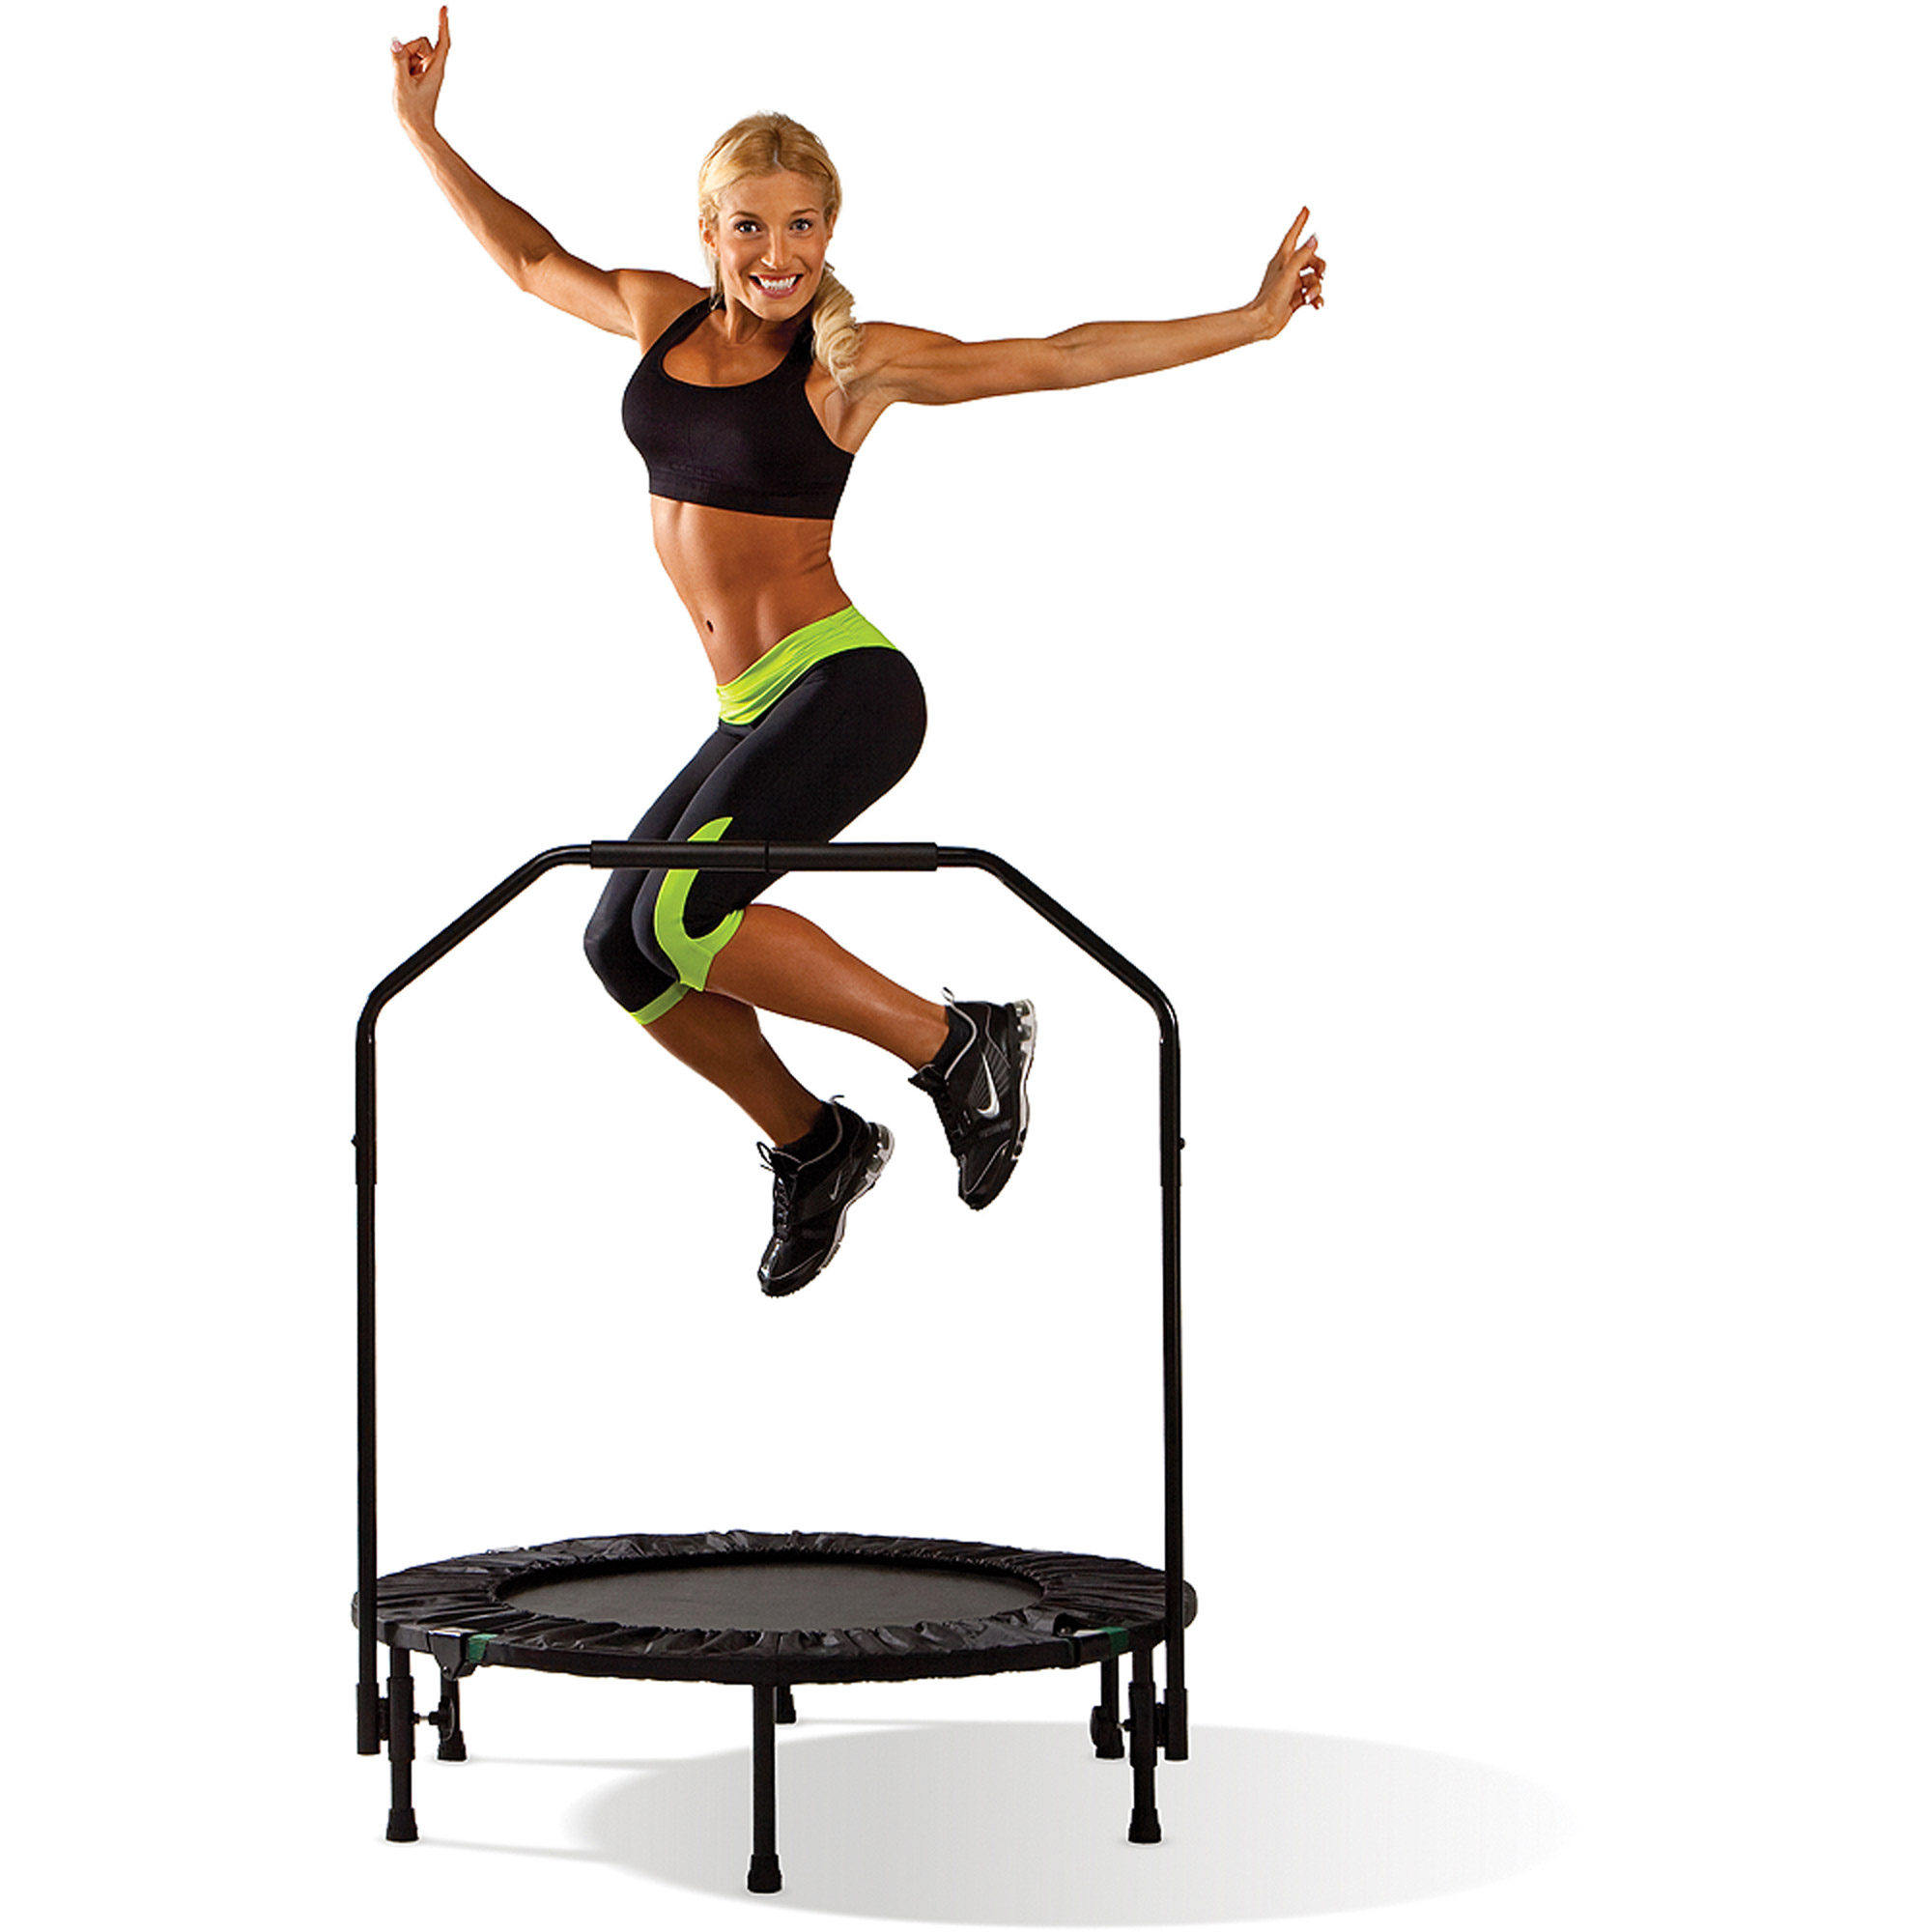 Marcy 40-Inch Trampoline Cardio Trainer, with Handrail, Black